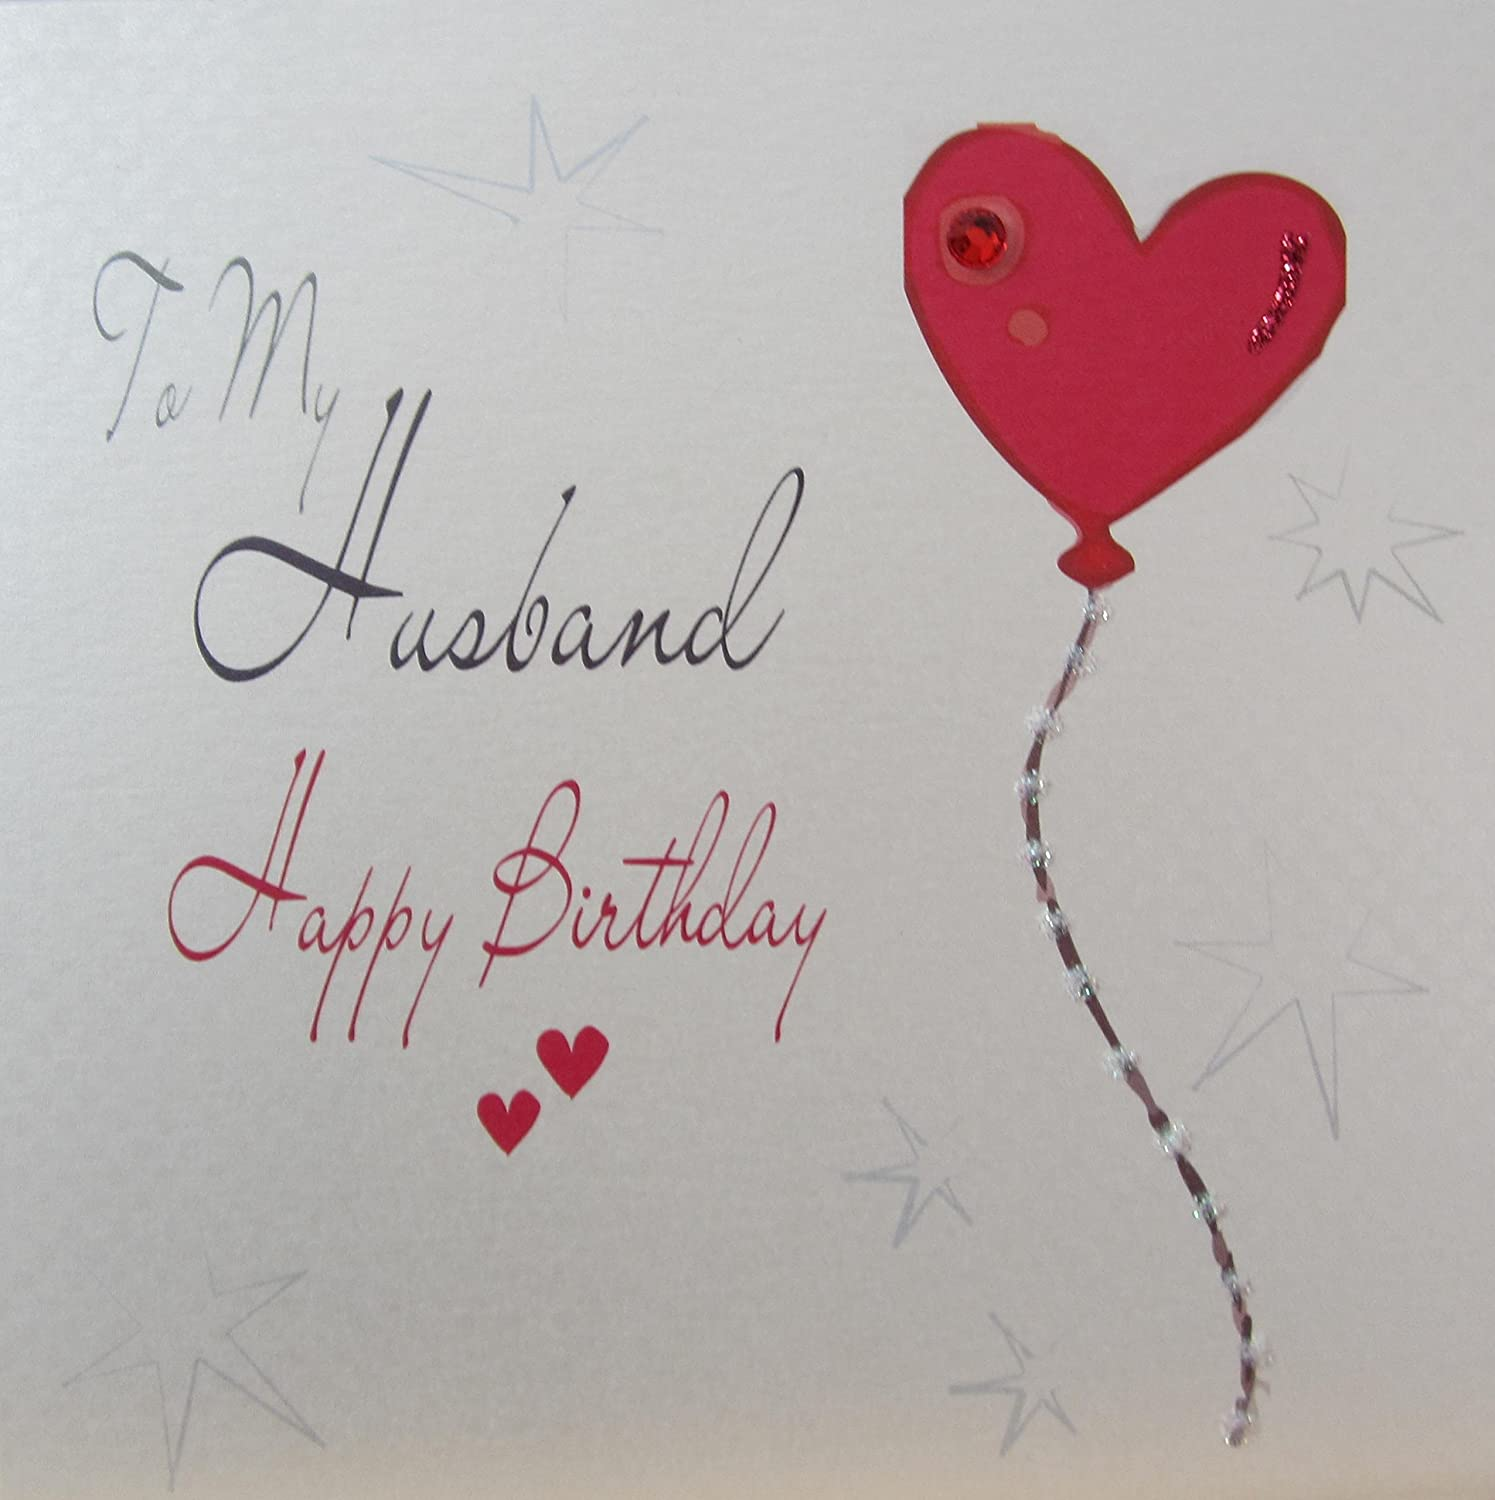 WHITE COTTON CARDS WB194 Heart Balloon To My Husband Happy Birthday Handmade Card White Amazoncouk Kitchen Home